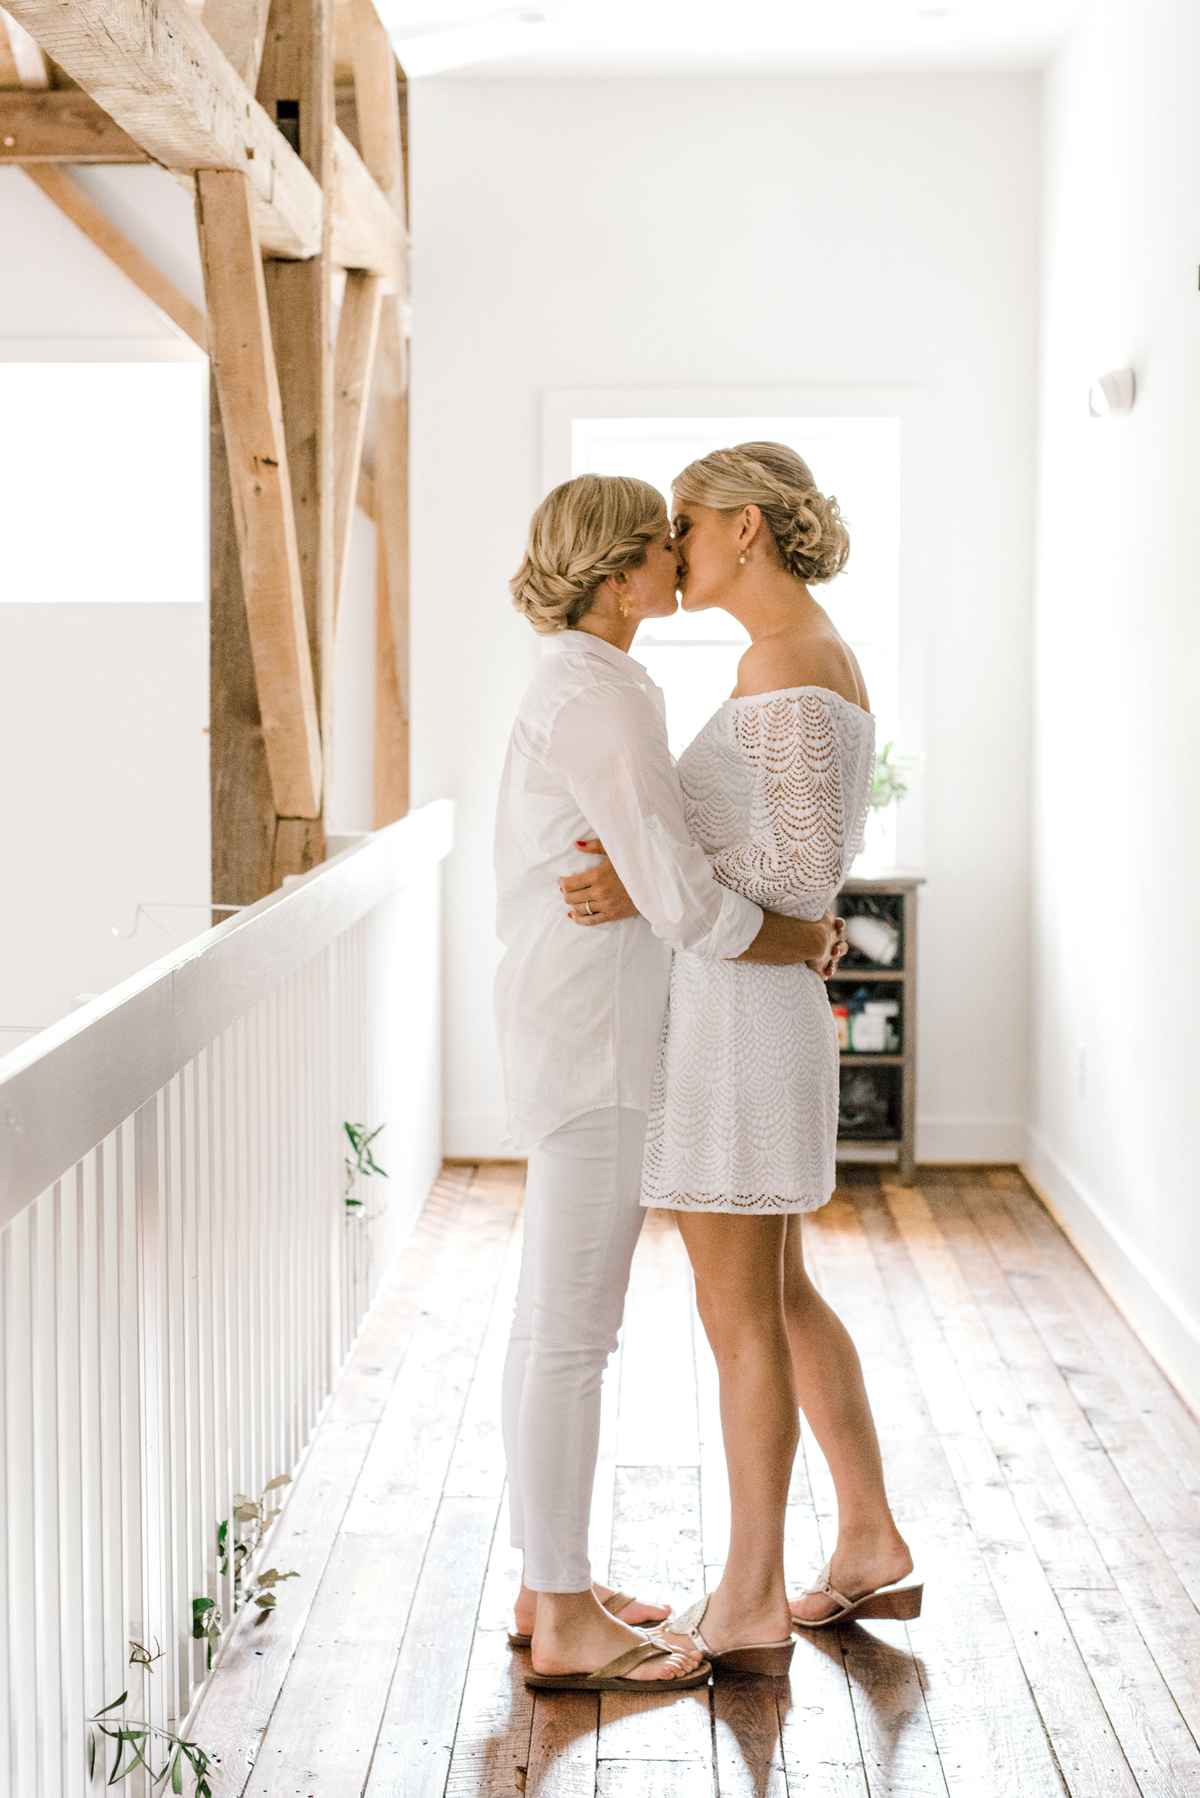 paige and kristine wedding first look